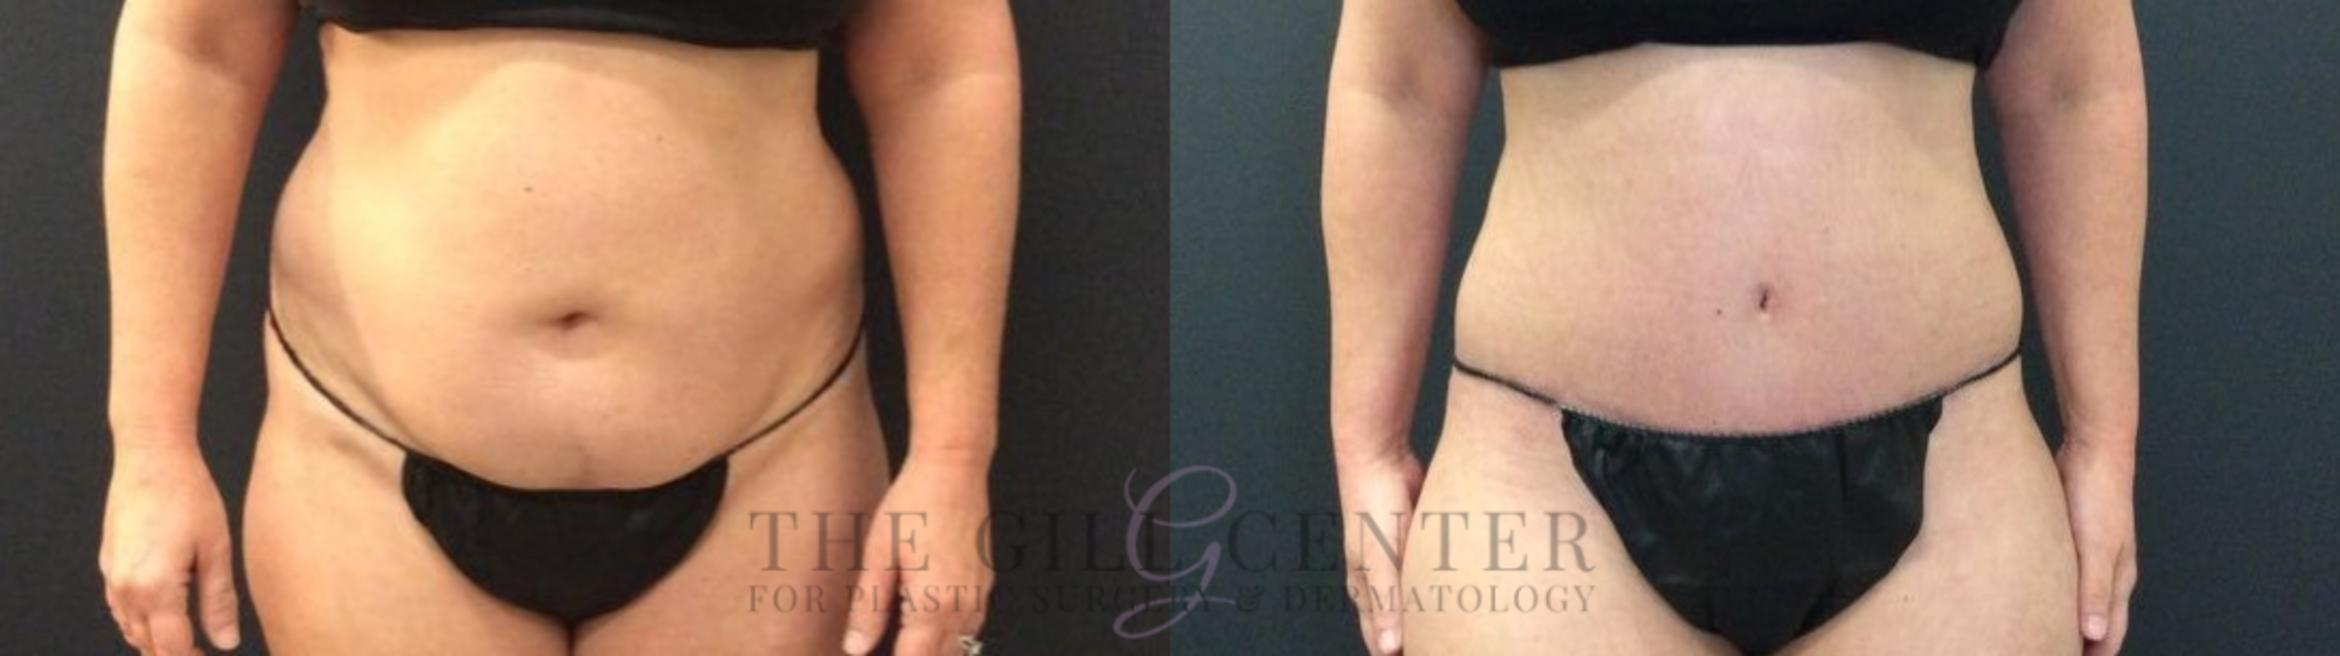 Tummy Tuck Case 424 Before & After Front | Shenandoah, TX | The Gill Center for Plastic Surgery and Dermatology